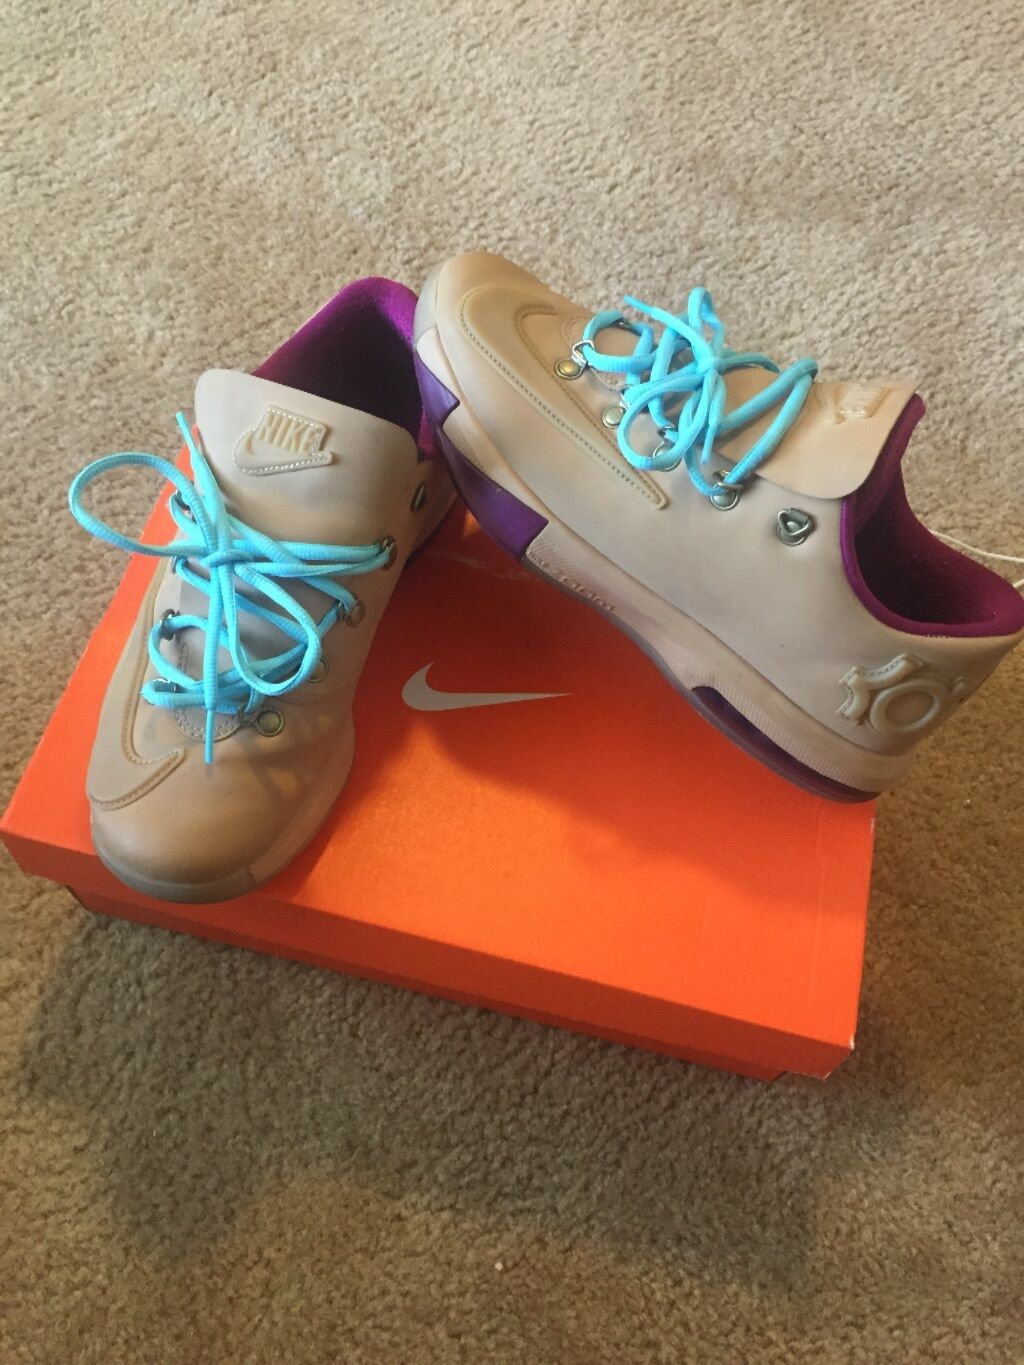 Nike Kd gums  Cheap and fashionable